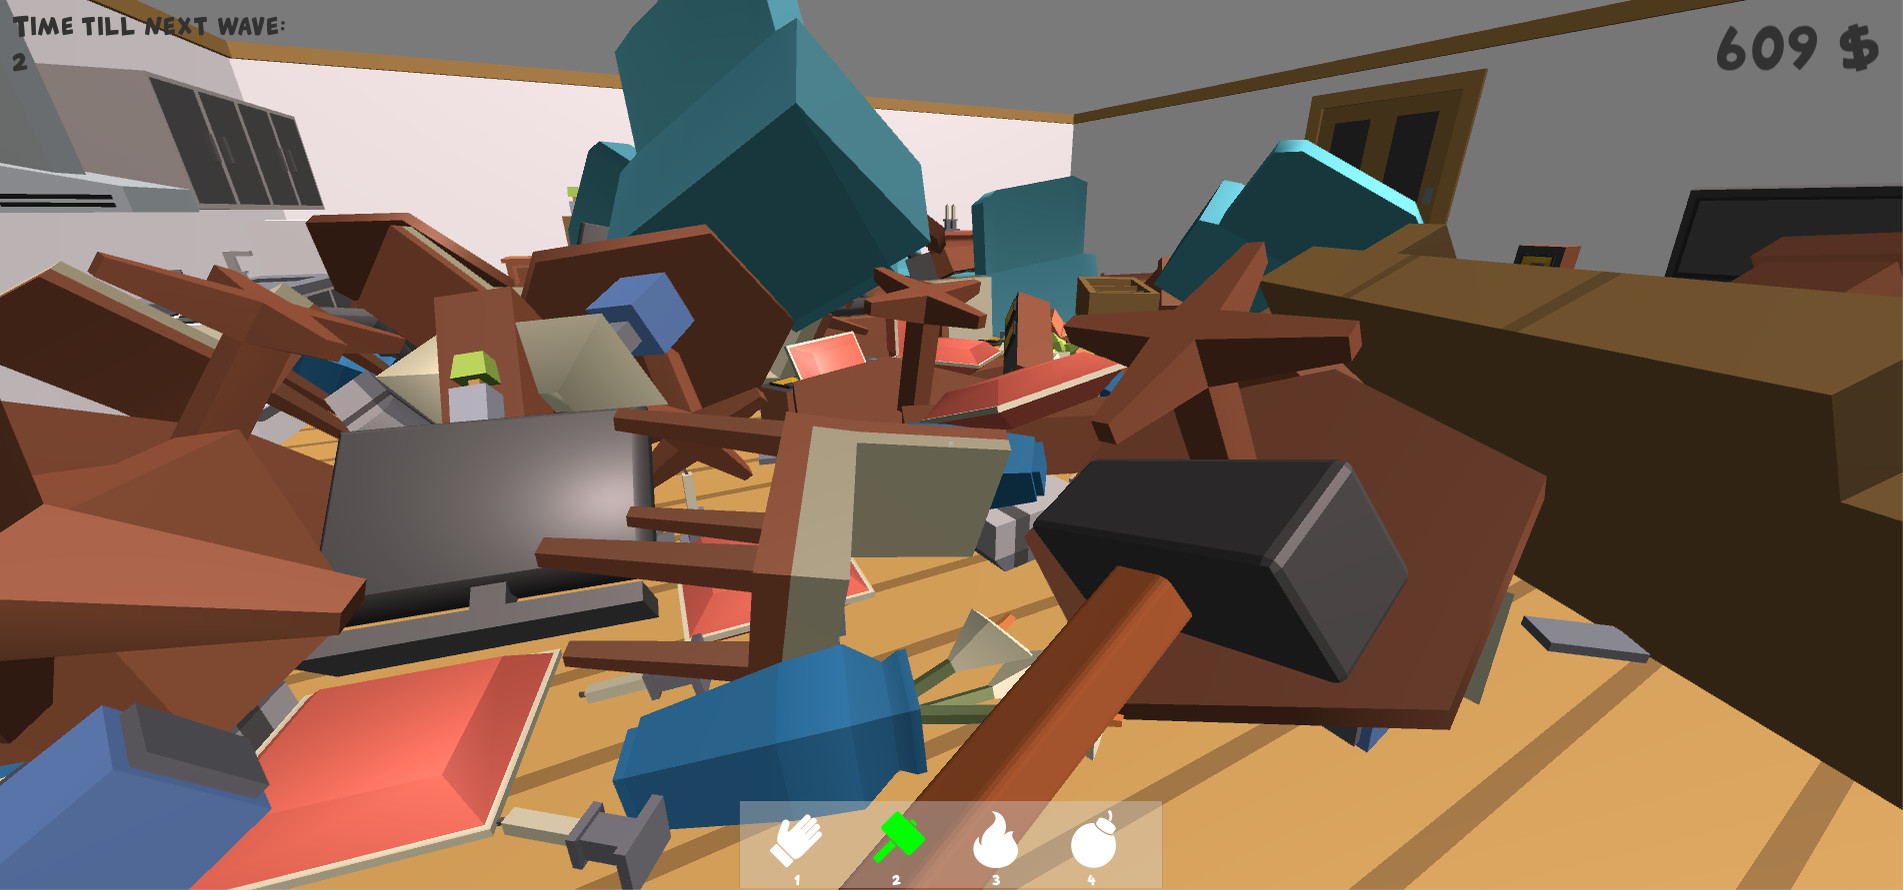 & What\u0027s On Steam - Tidy Your Room Simulator